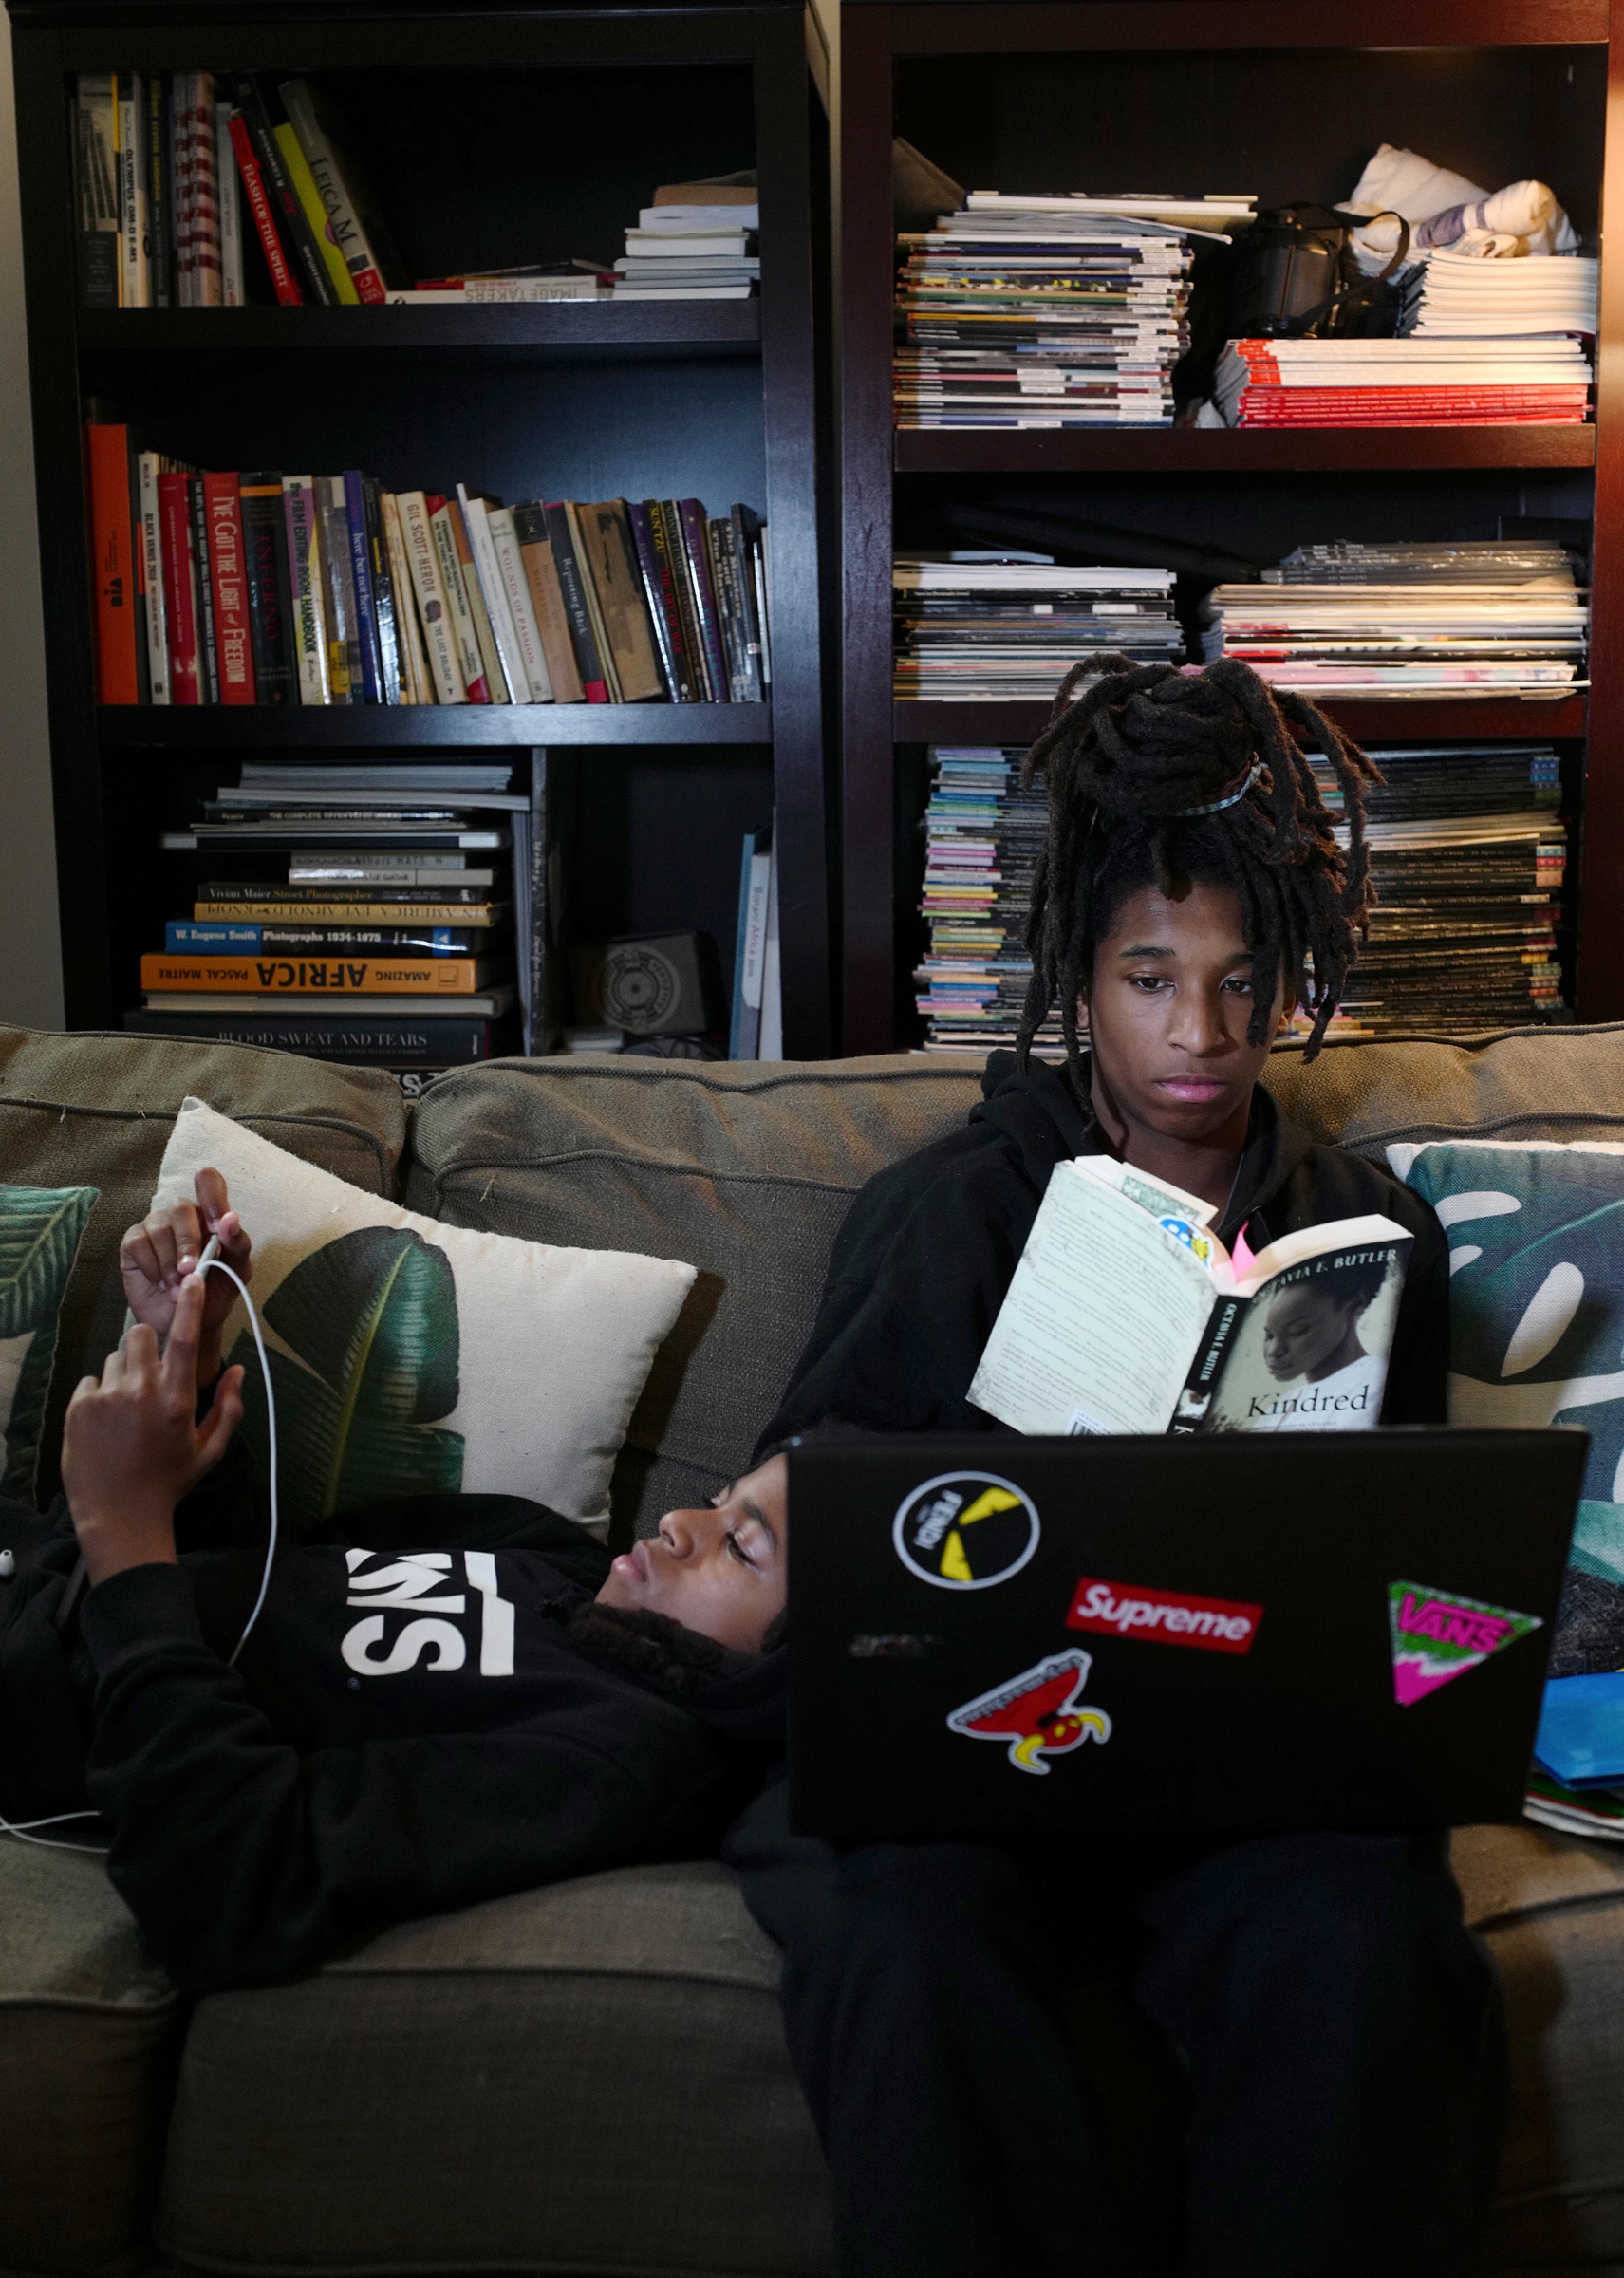 Mosijah Roye, 15, right, and Iyeoshujah, 11, the photographer's sons, follow online classes in New York on March 23 on their home devices